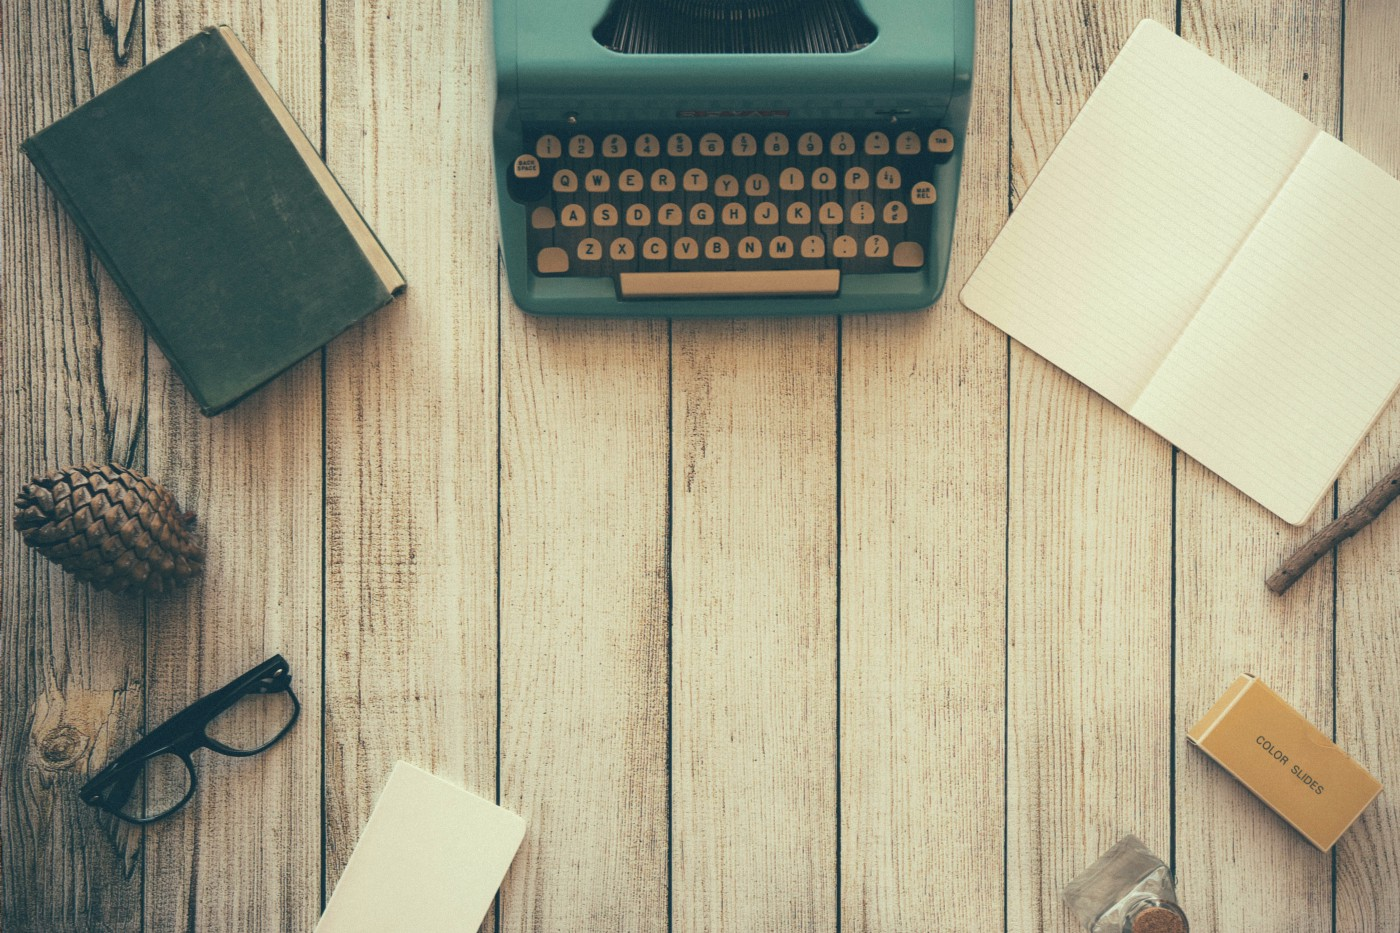 An antique typewriter sits on tabletop with book, glasses, journal, pinecone.